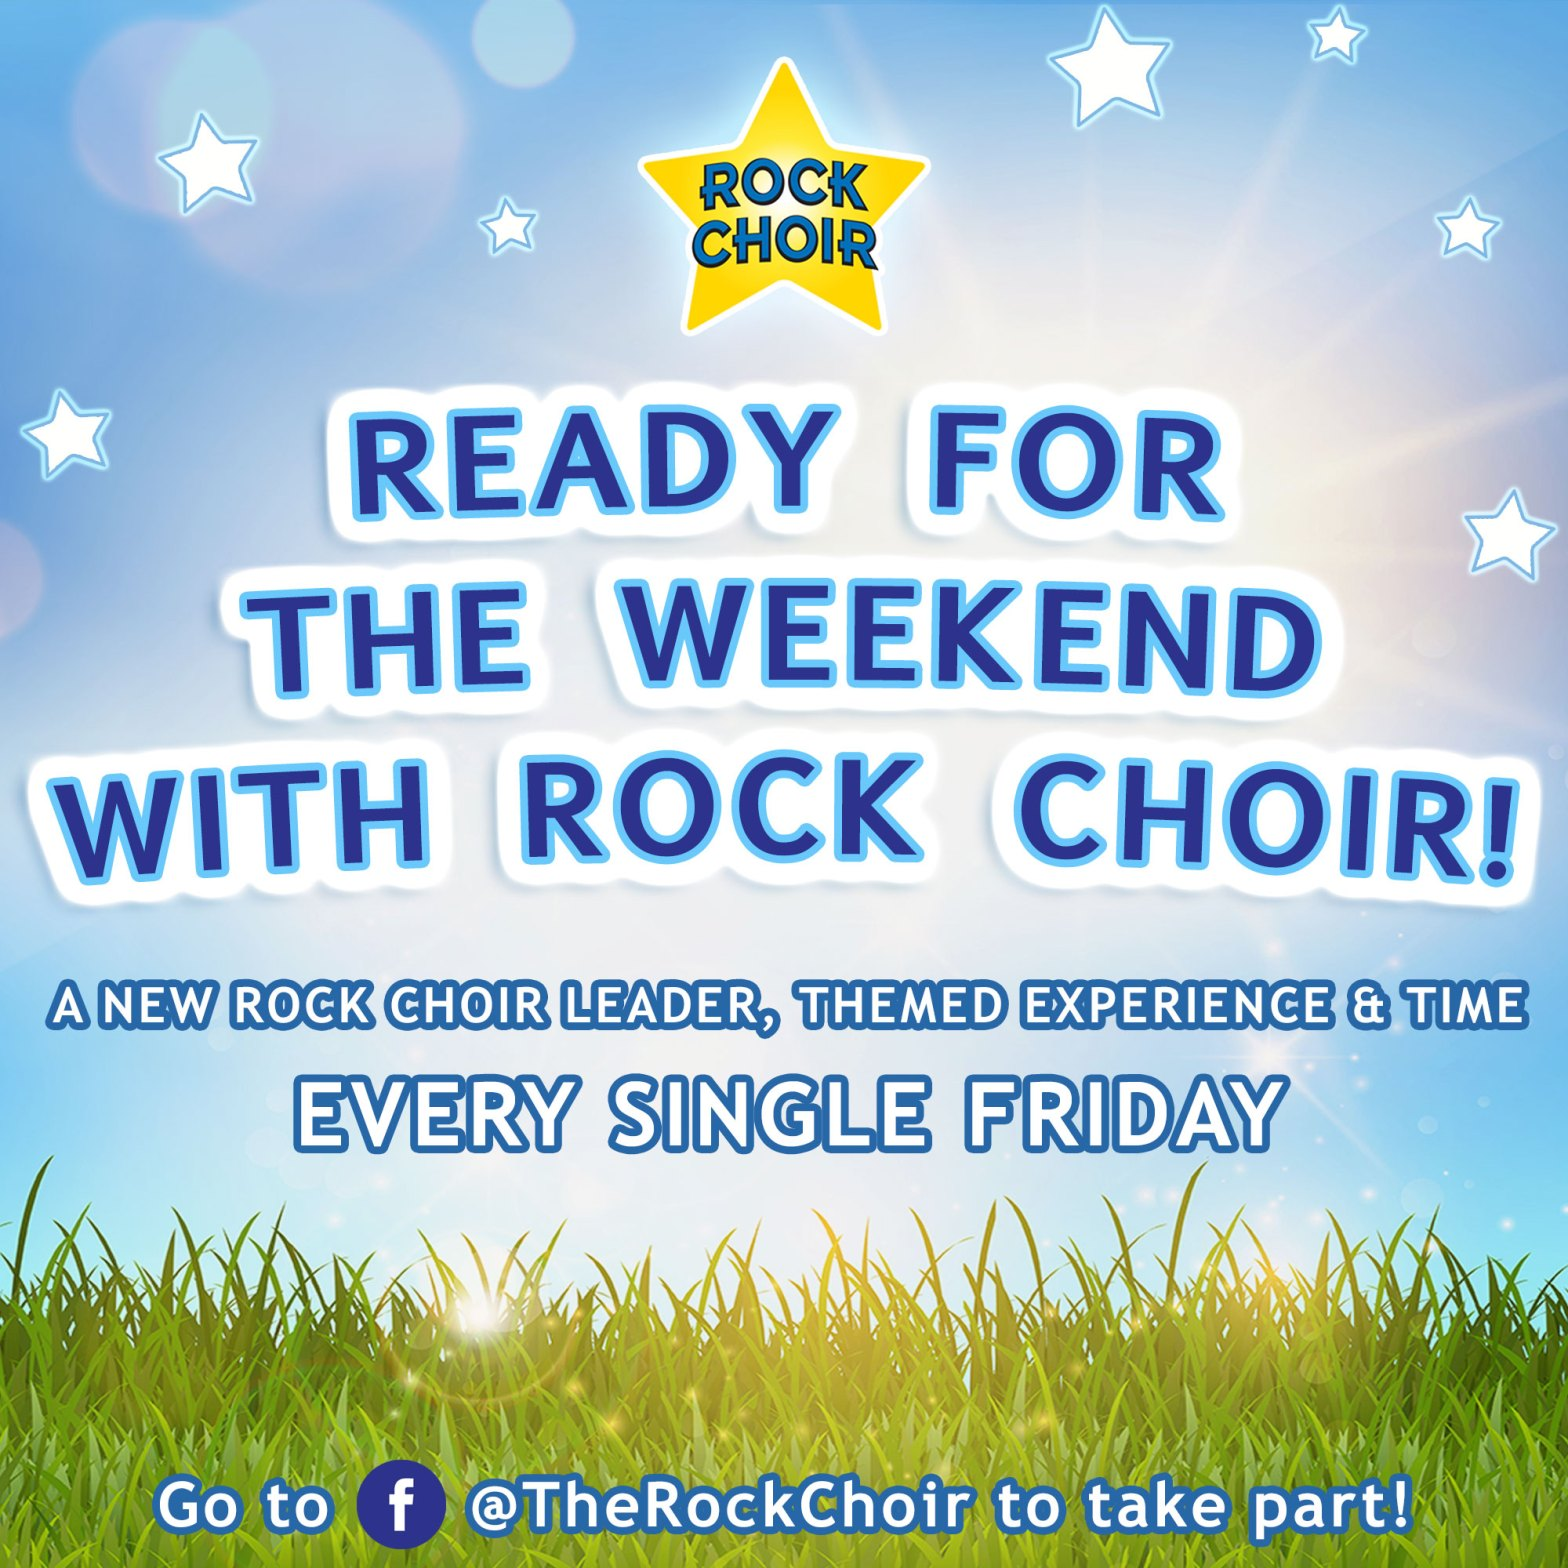 Ready for the Weekend with Rock Choir